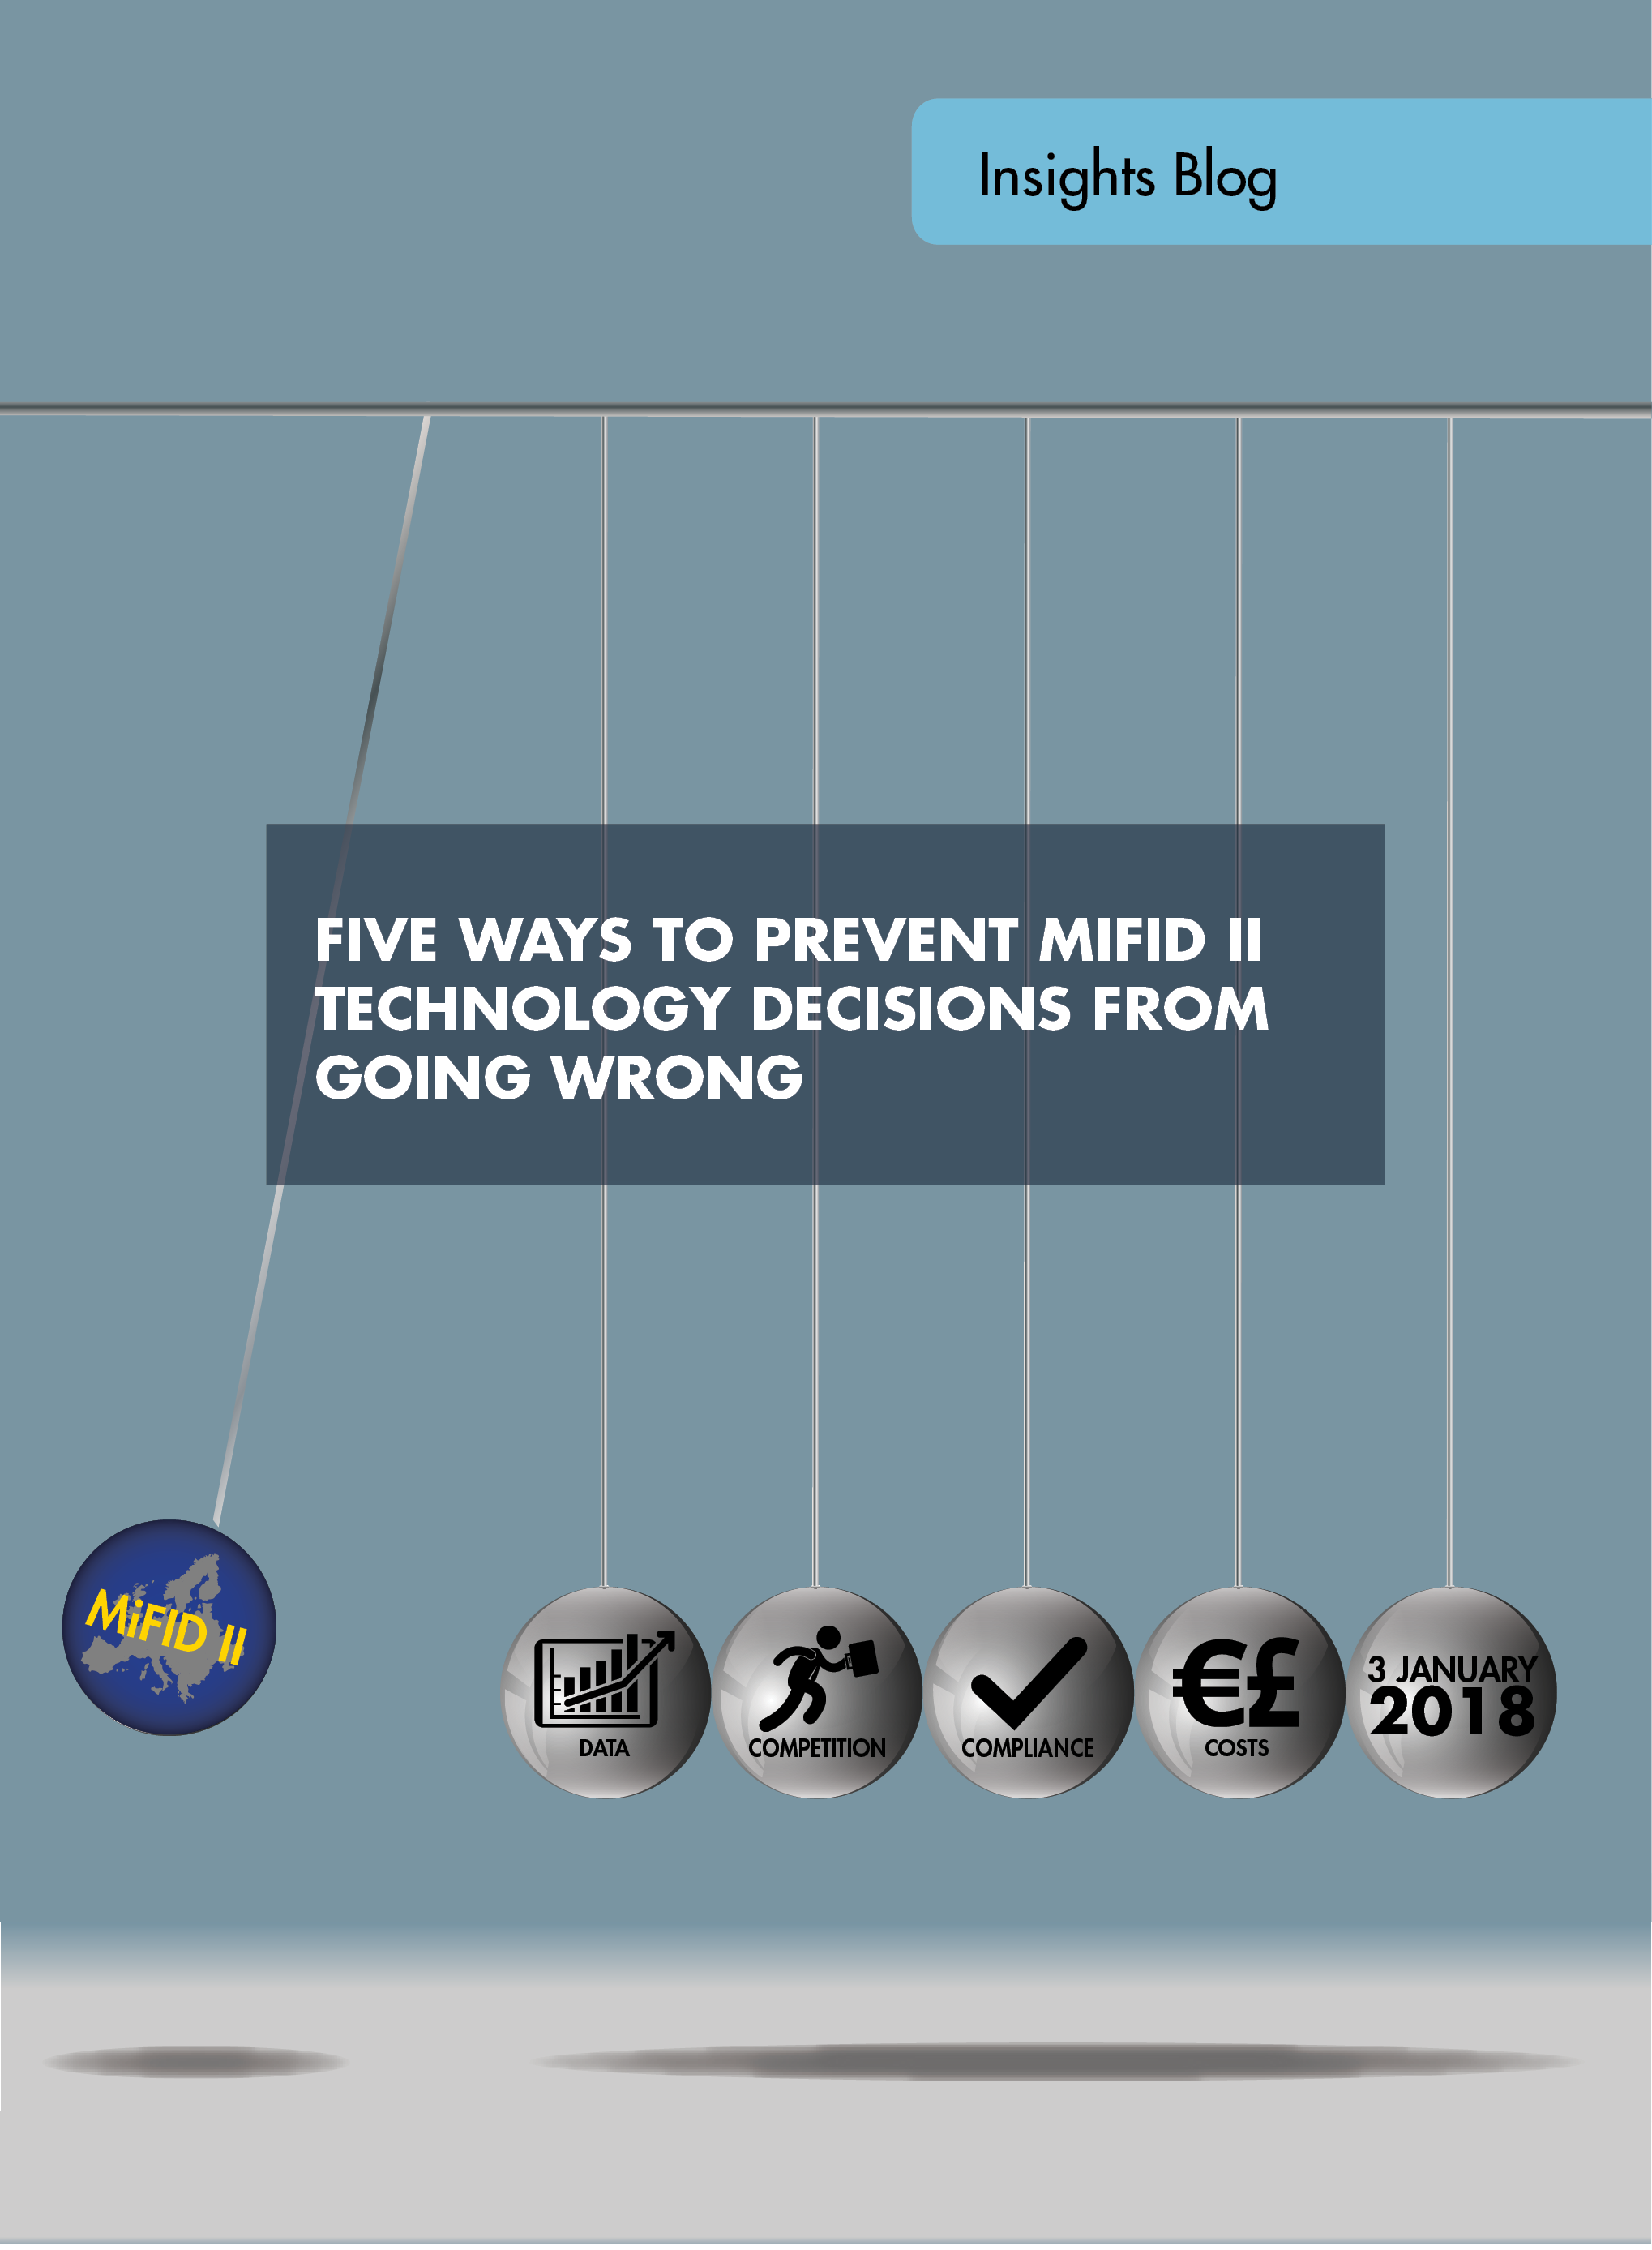 Five ways to prevent MiFID II technology decisions from going wrong